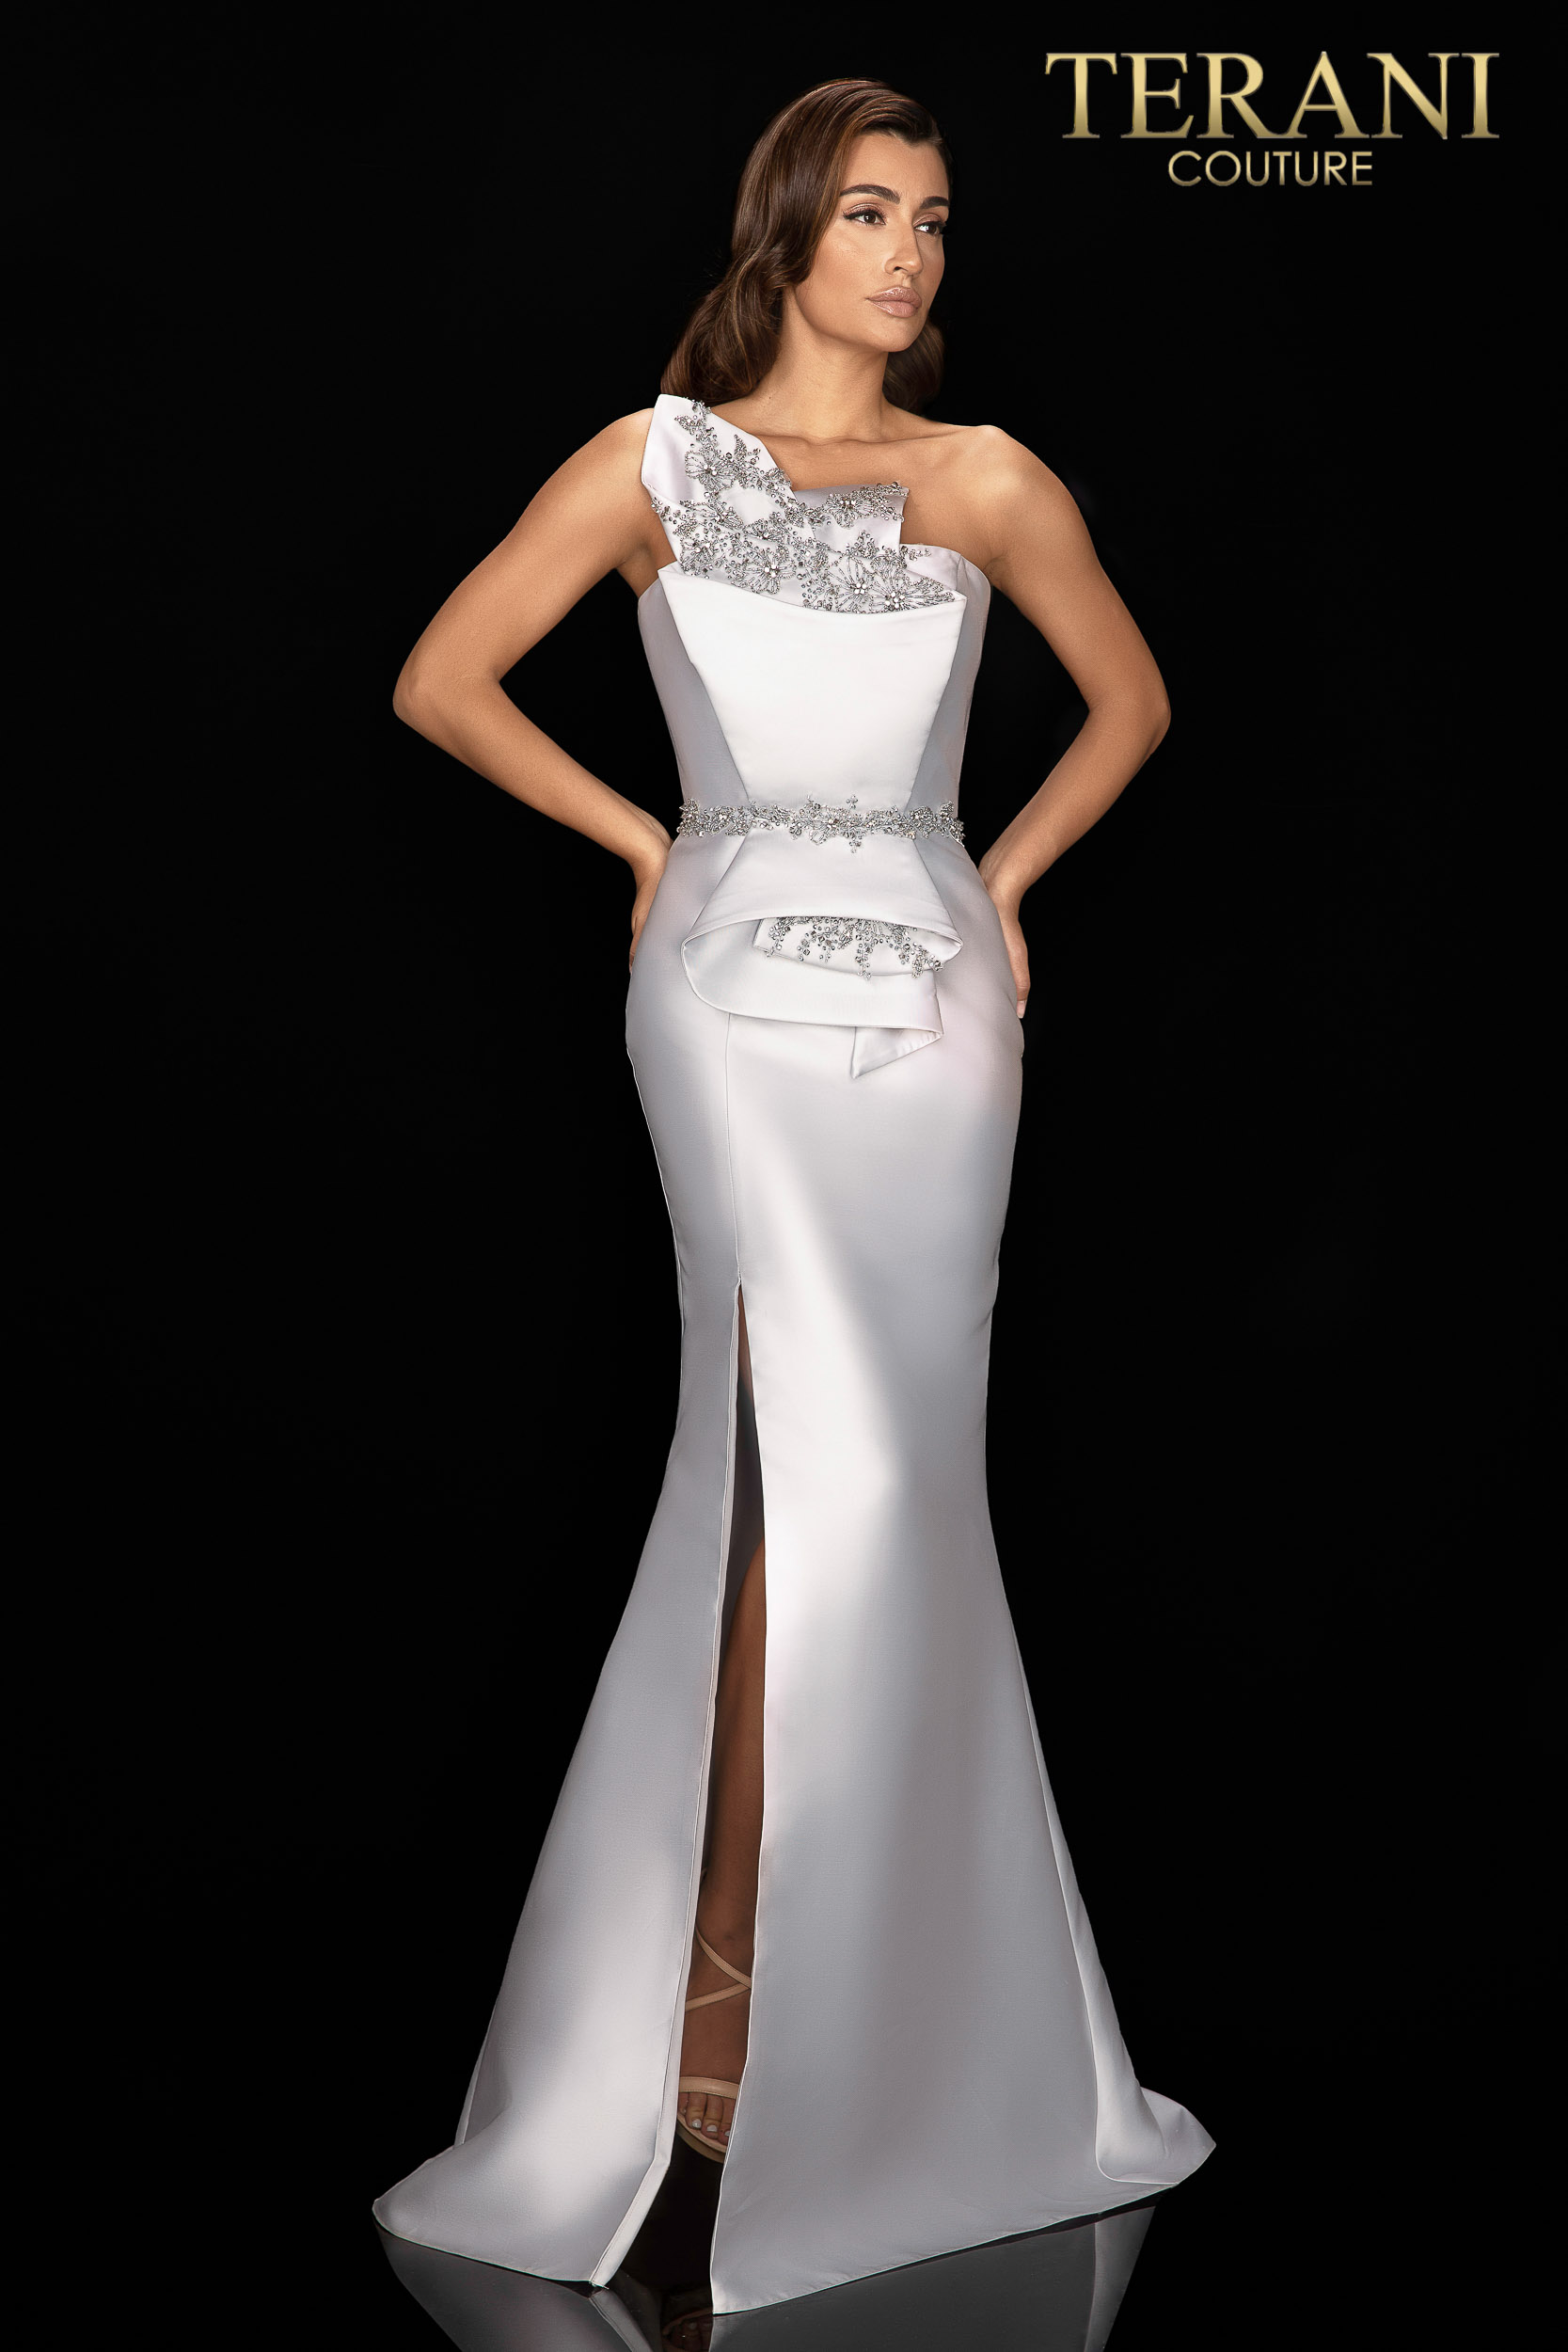 Architectural wrapped torso gown detailed with stones. This slim fit gown has one shoulder and side slit